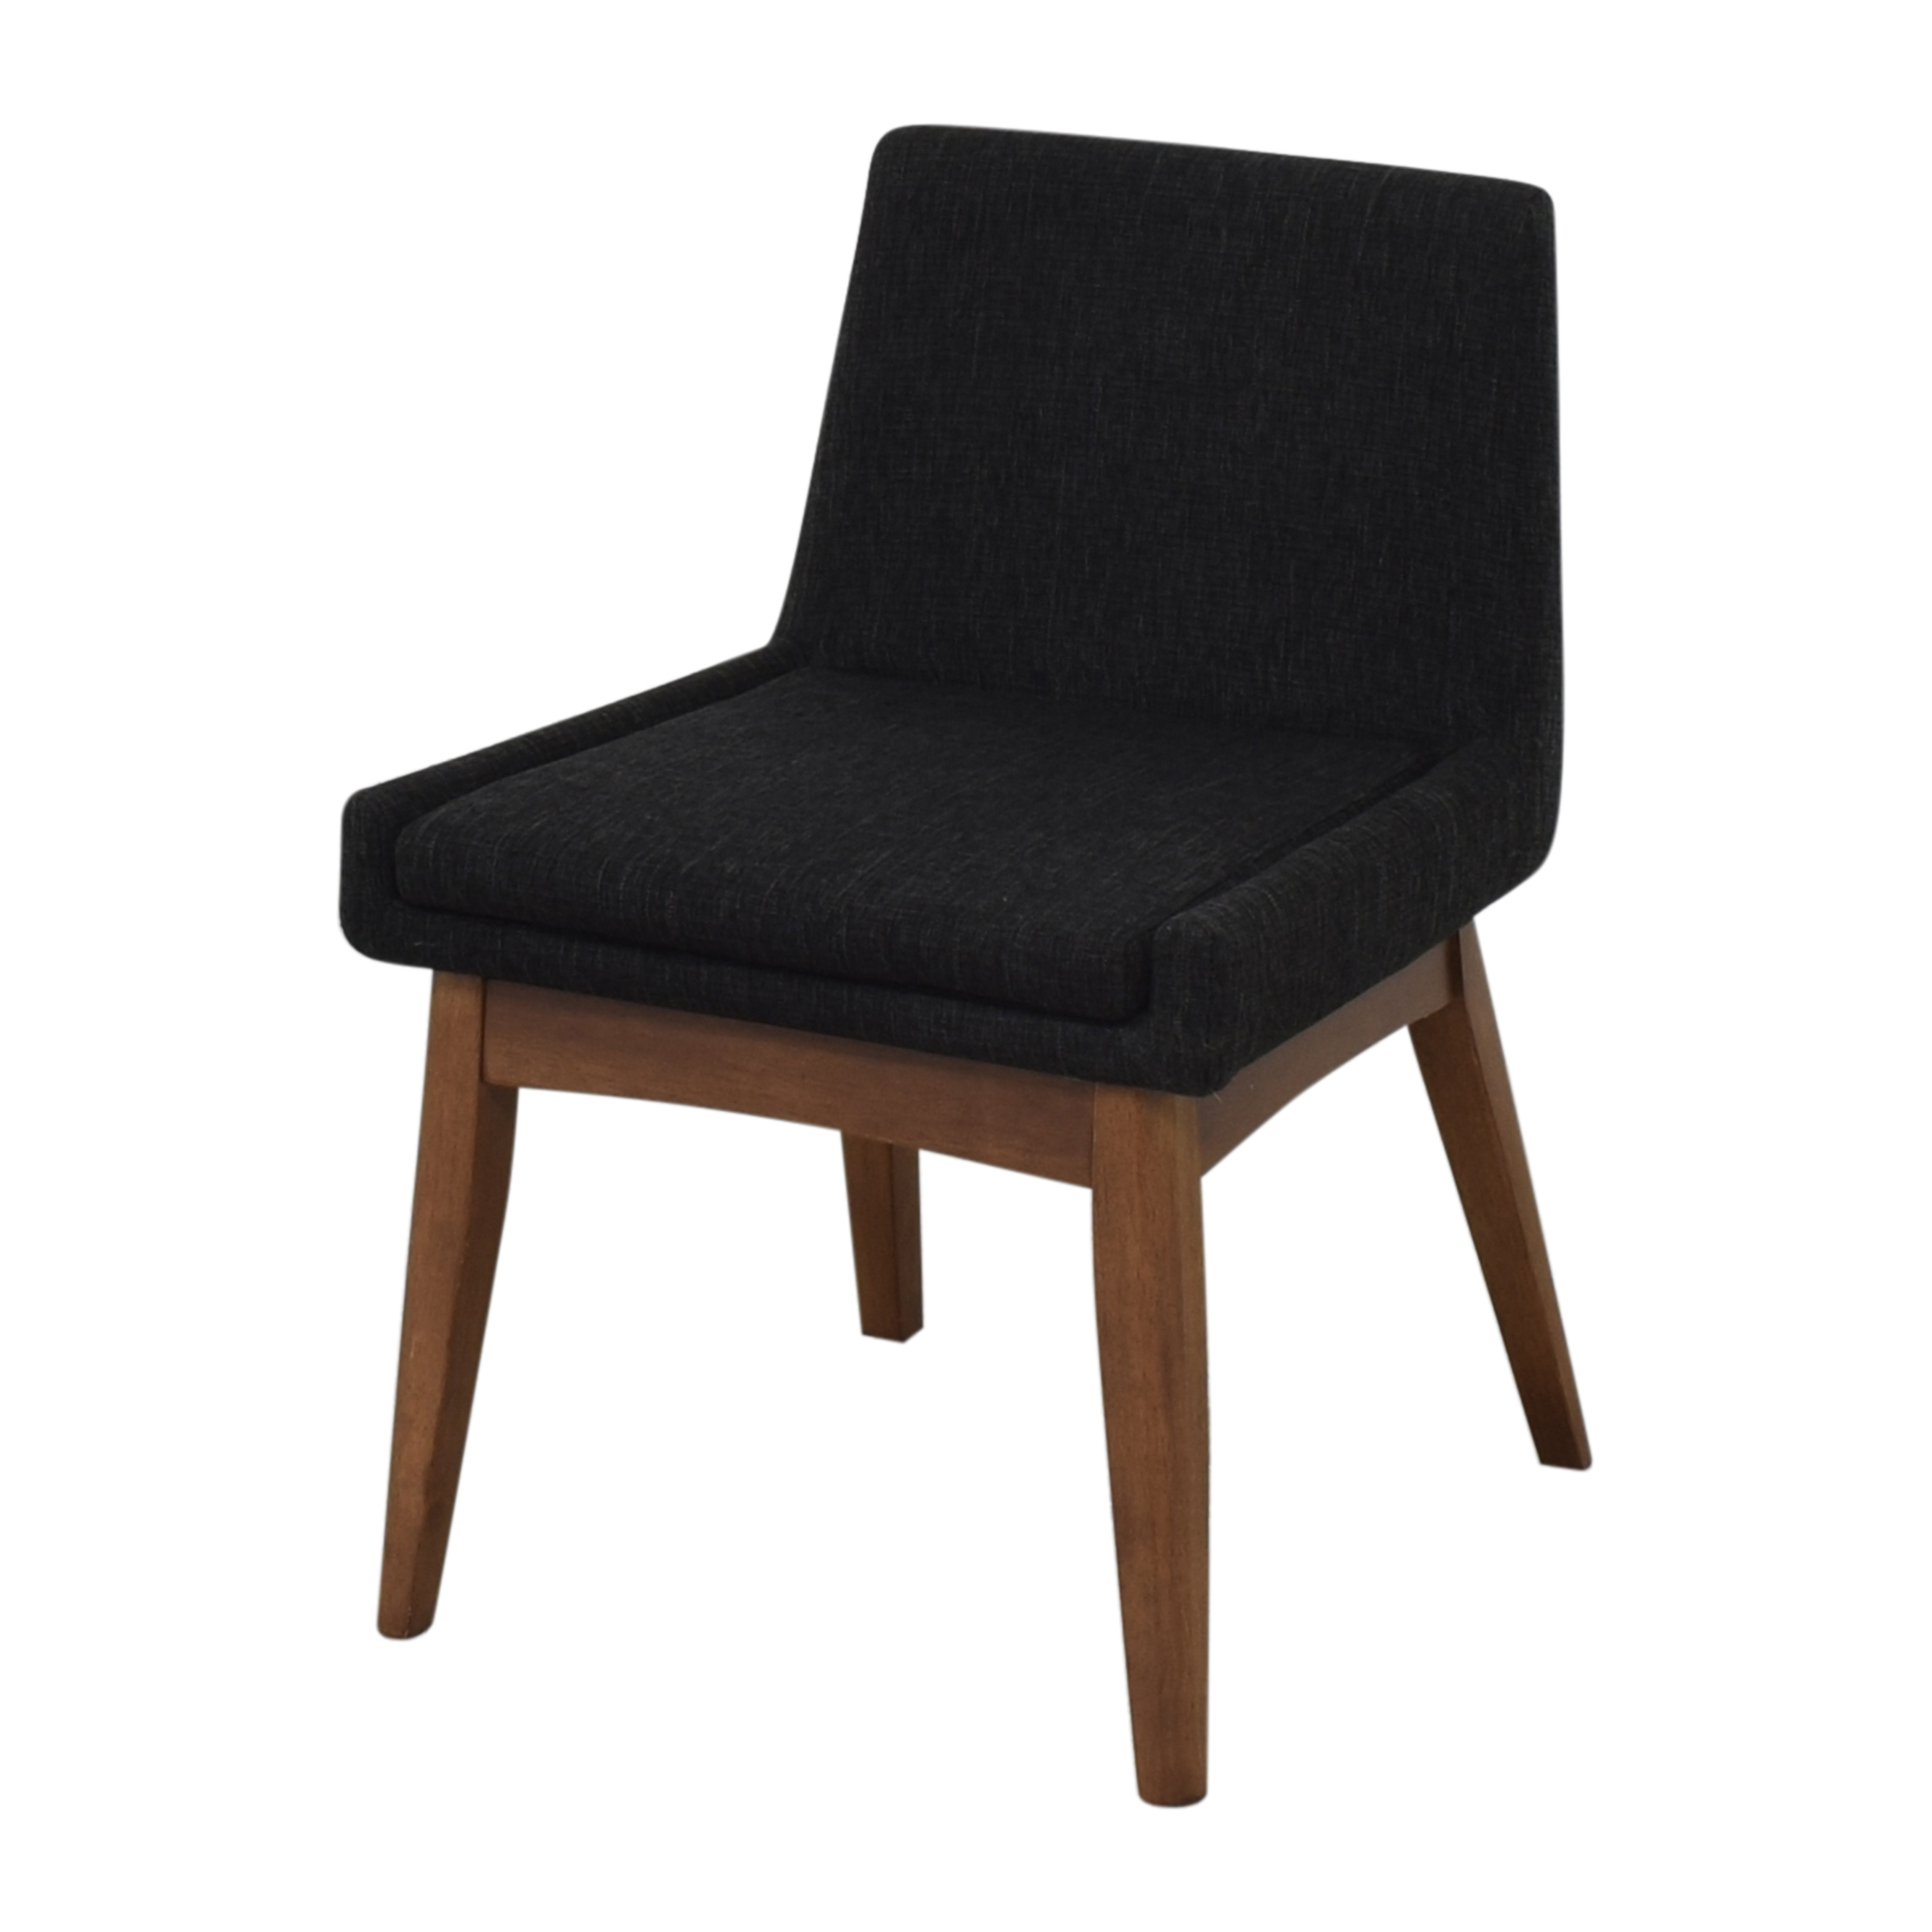 AllModern AllModern Hayes Upholstered Dining Chairs on sale